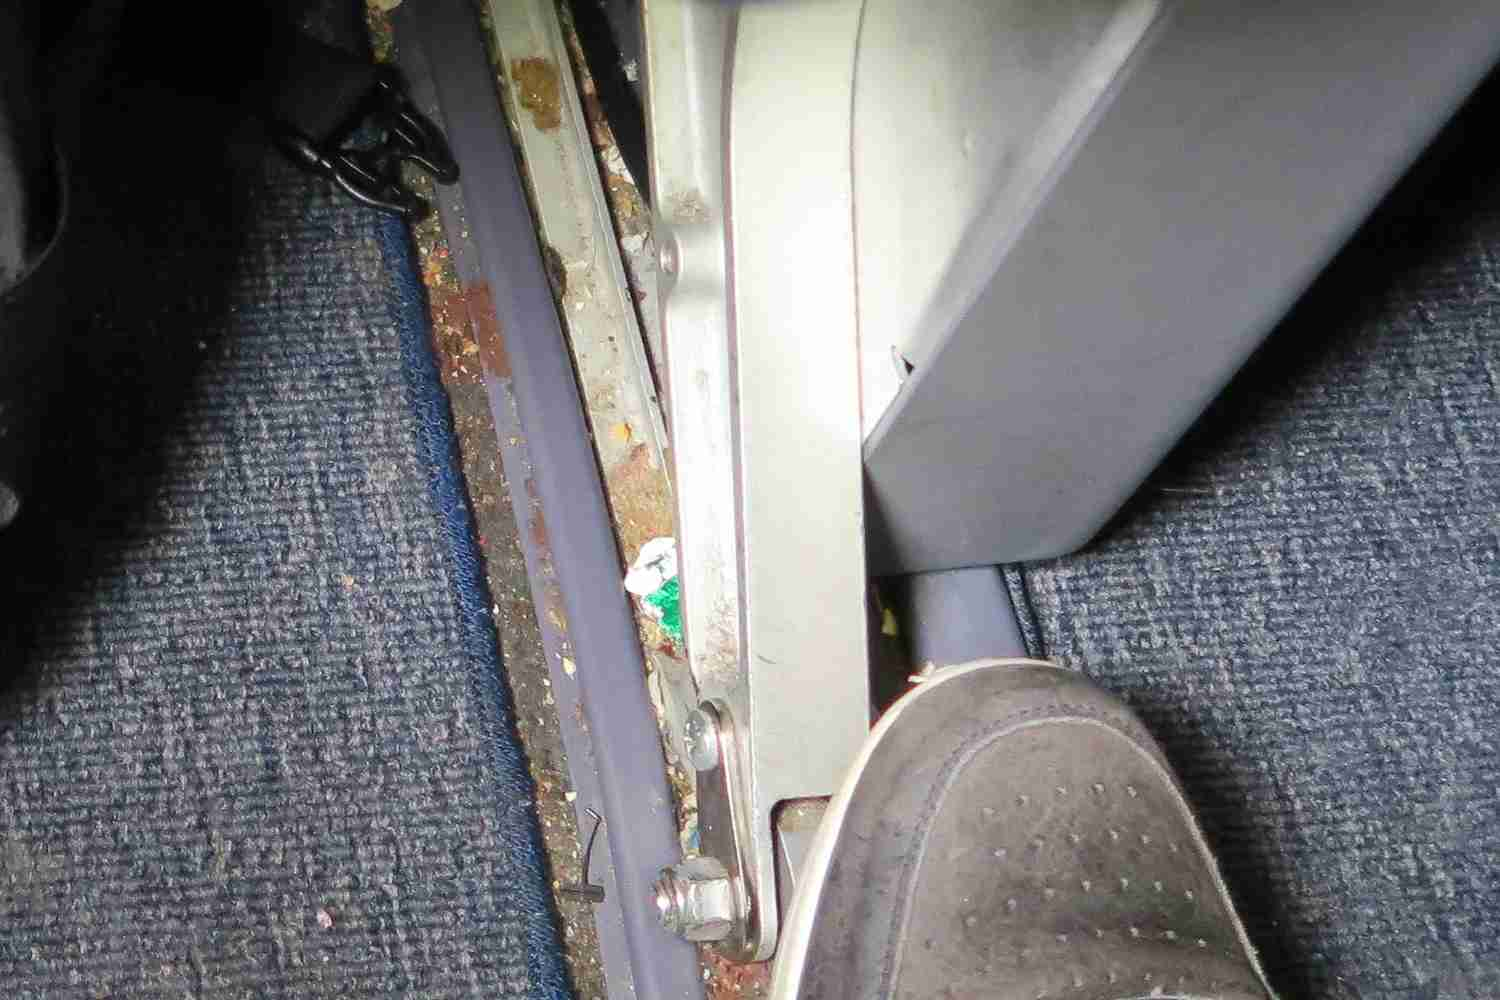 The area under my seat wasn